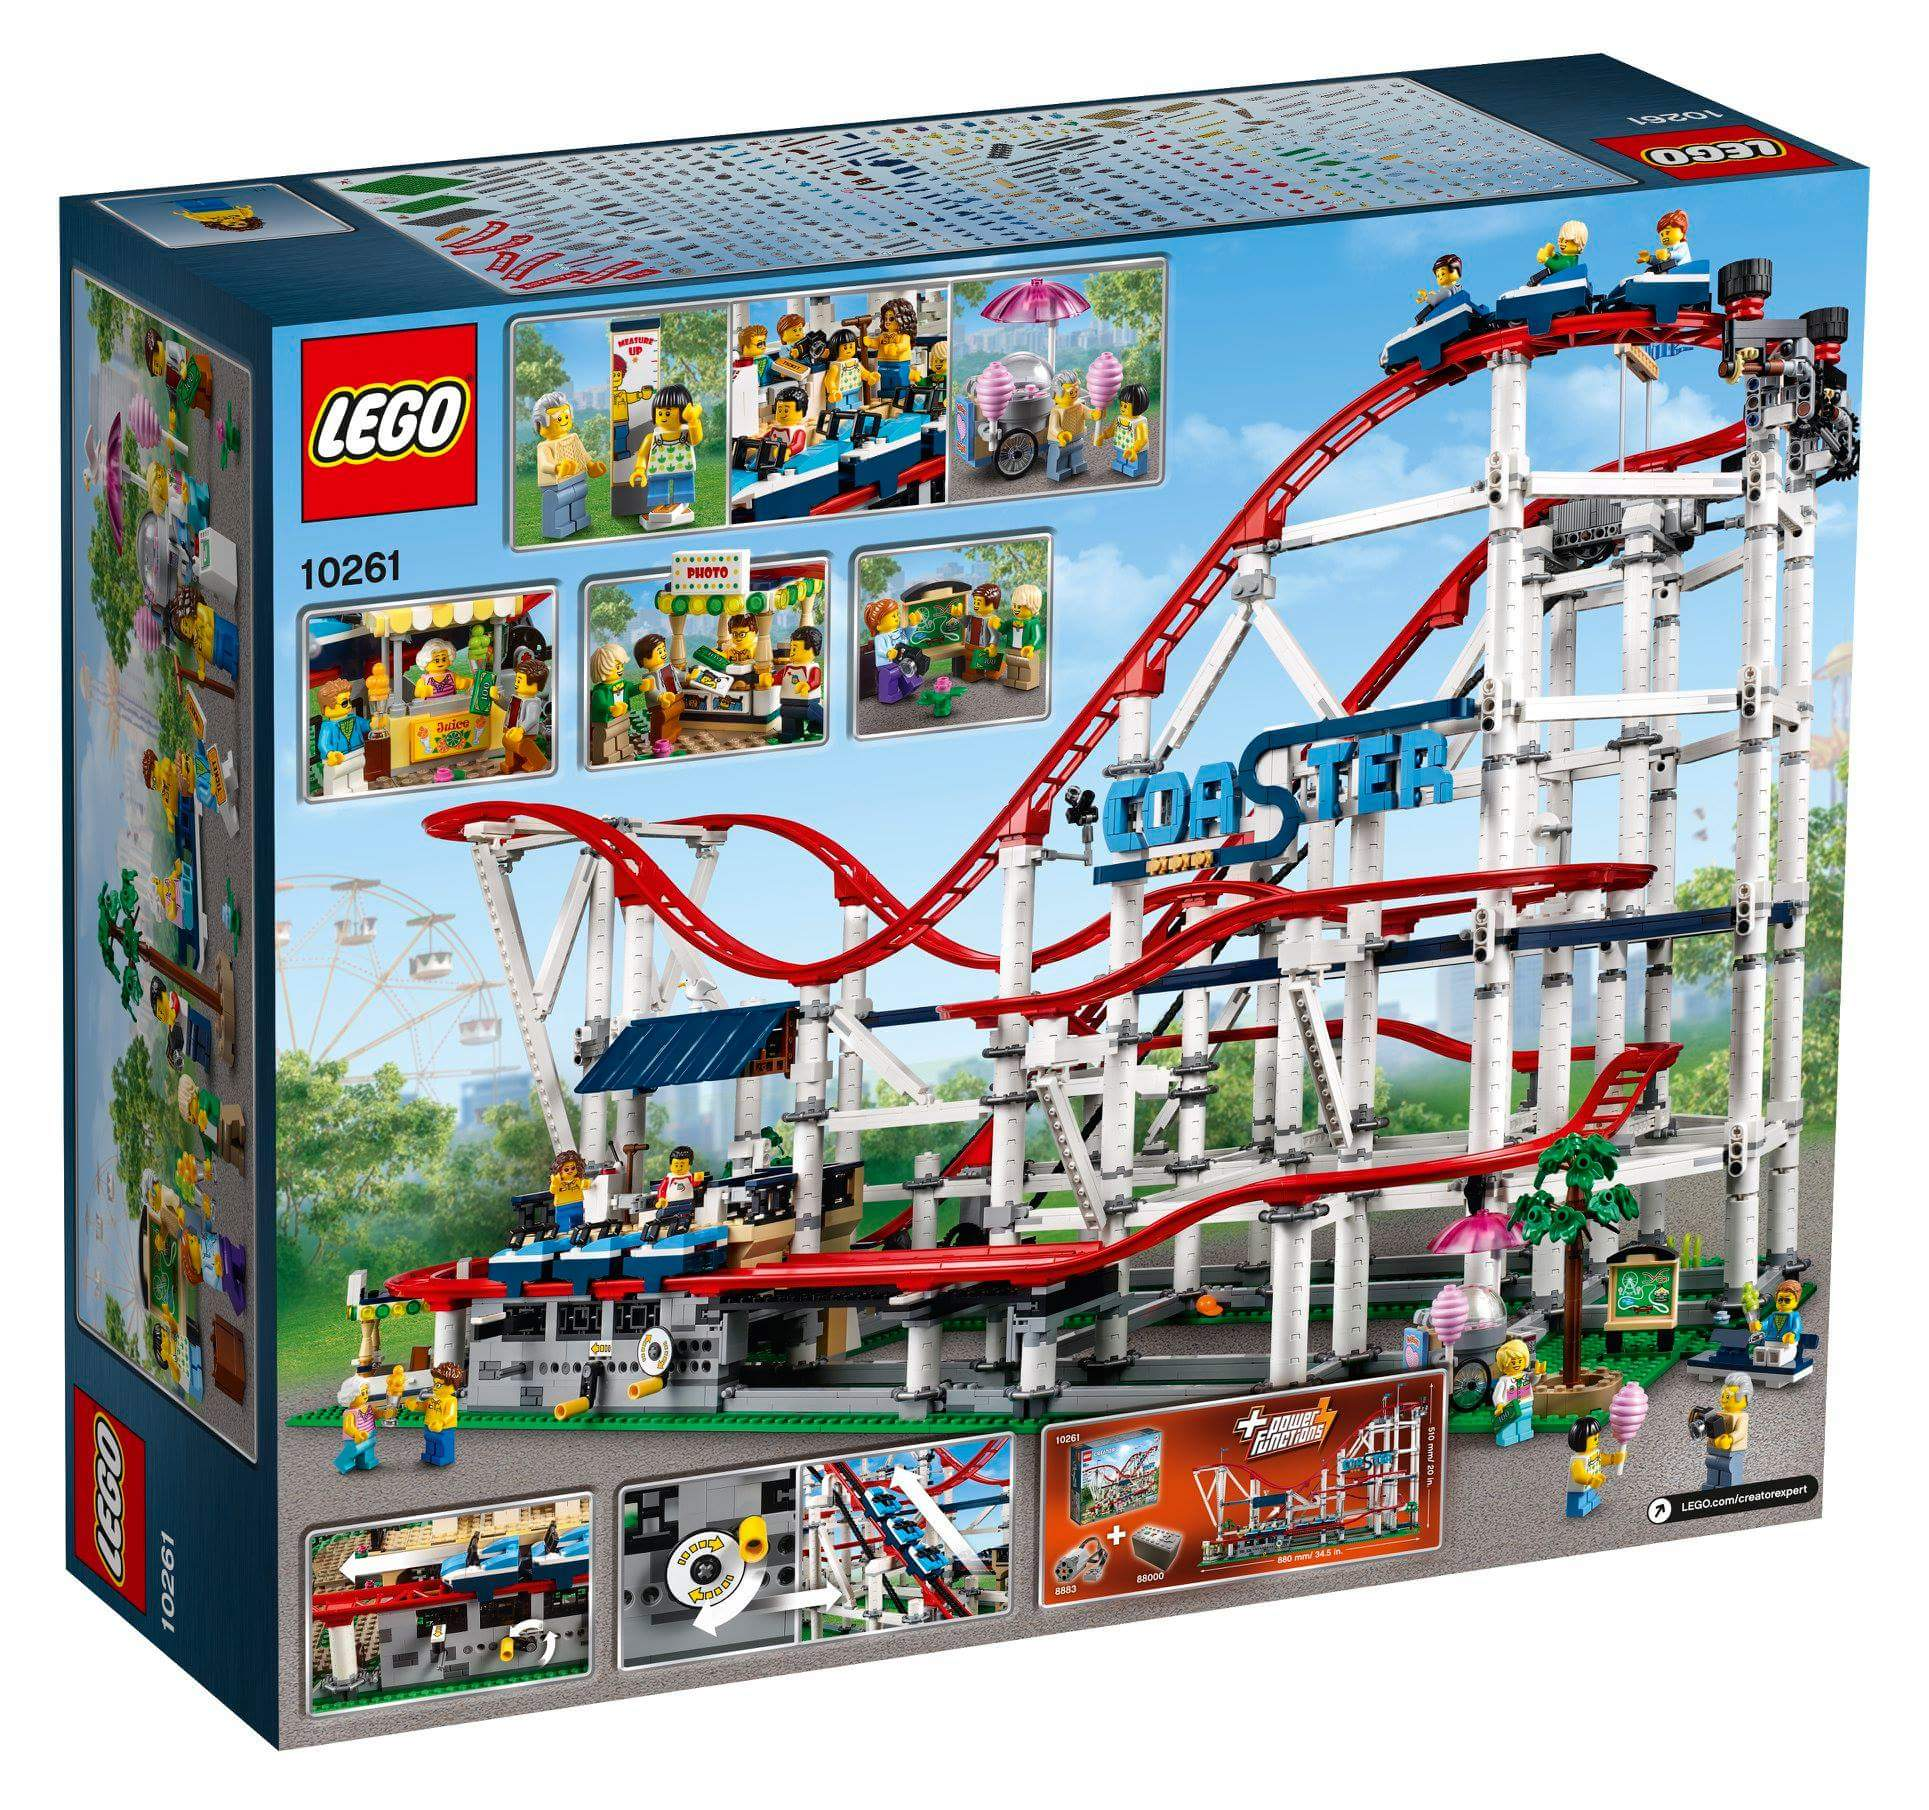 10261 Lego Creator Expert Roller Coaster Box Rear The Brothers